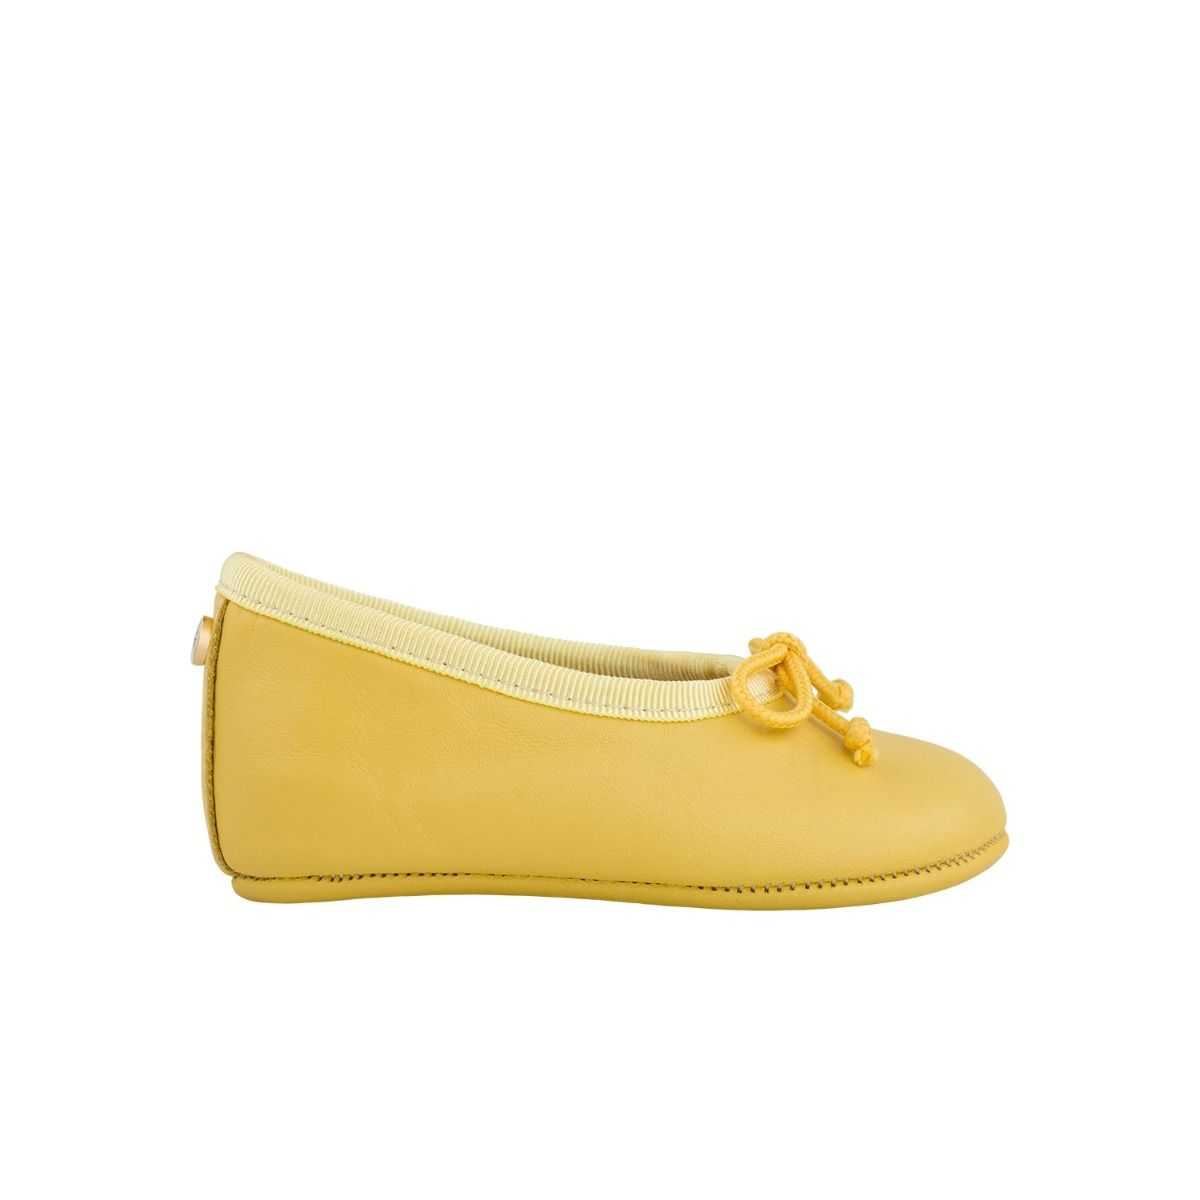 Baby ballet flats in yellow leather with bow detail in cord.